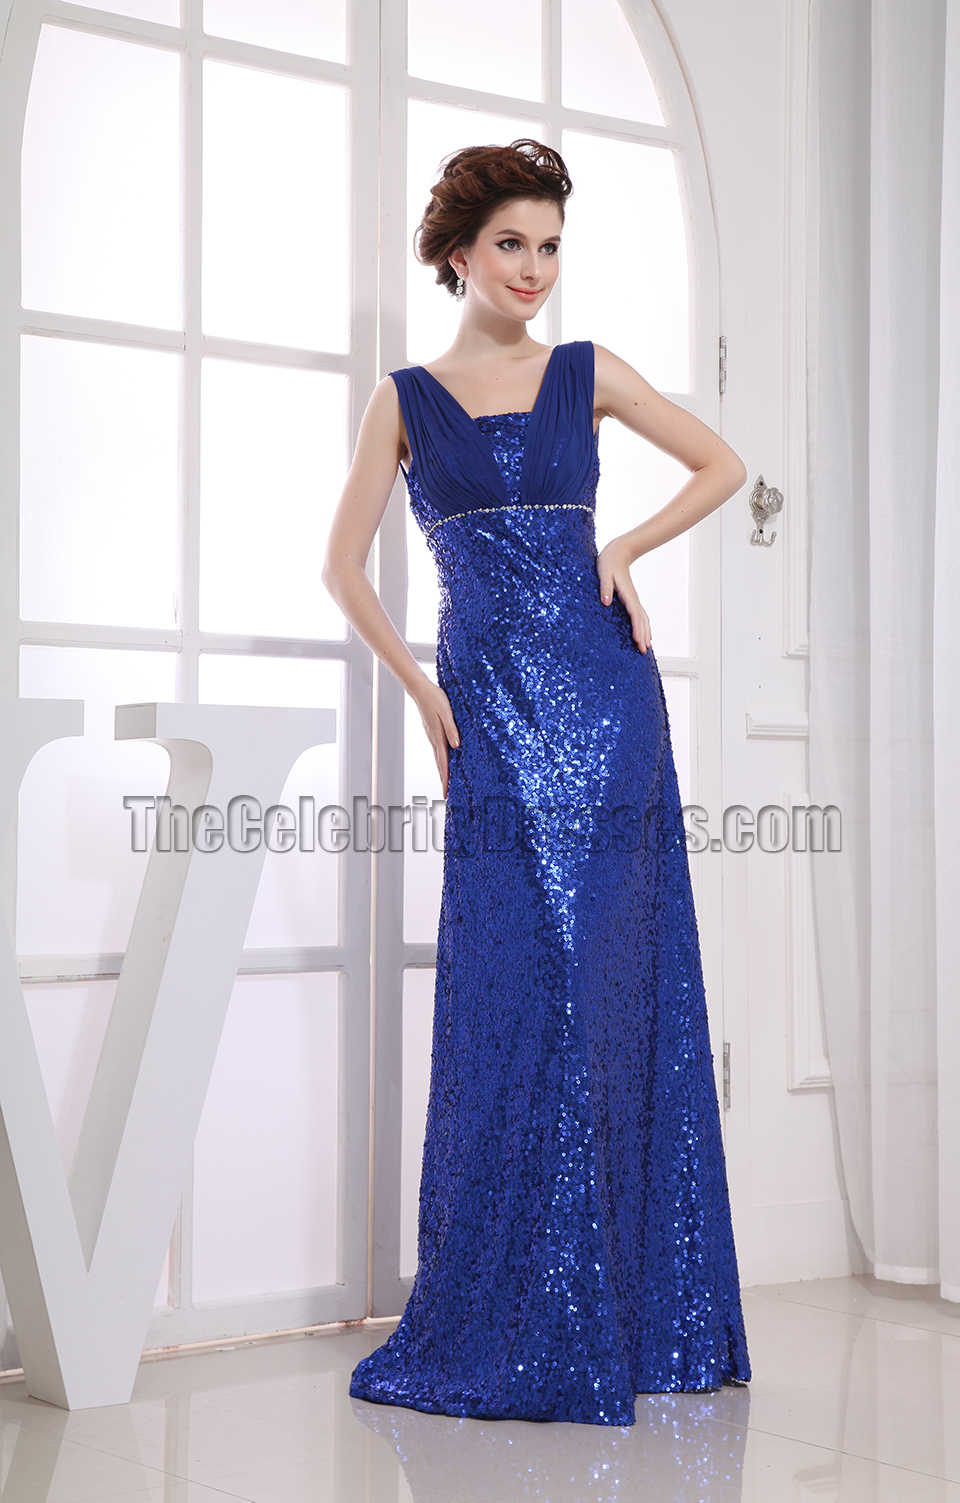 Royal Blue Sequined Evening Gowns Formal Prom Dresses ...